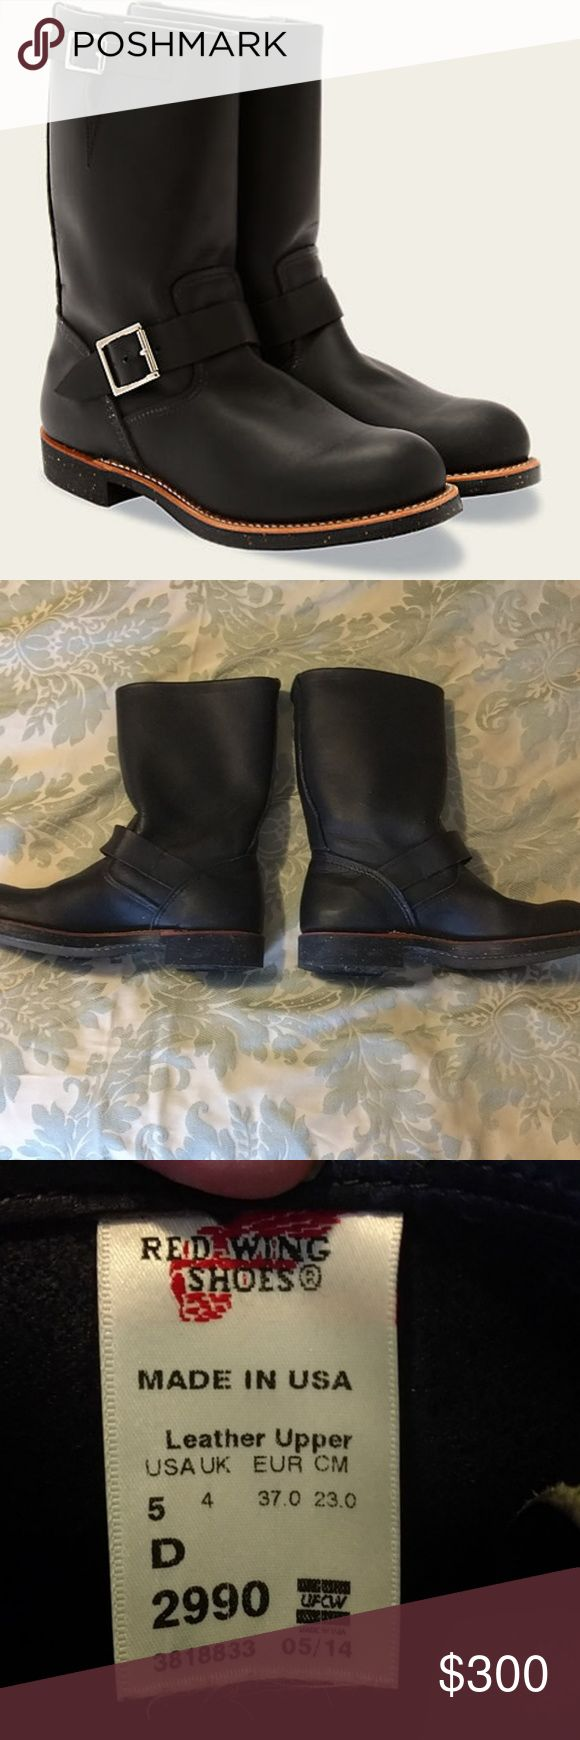 NWOT Red Wing Engineer 2990 Boots $400 online! They don't fit me, so I only tried wearing them once! Still perfect. No box. Red Wing Shoes Shoes Combat & Moto Boots